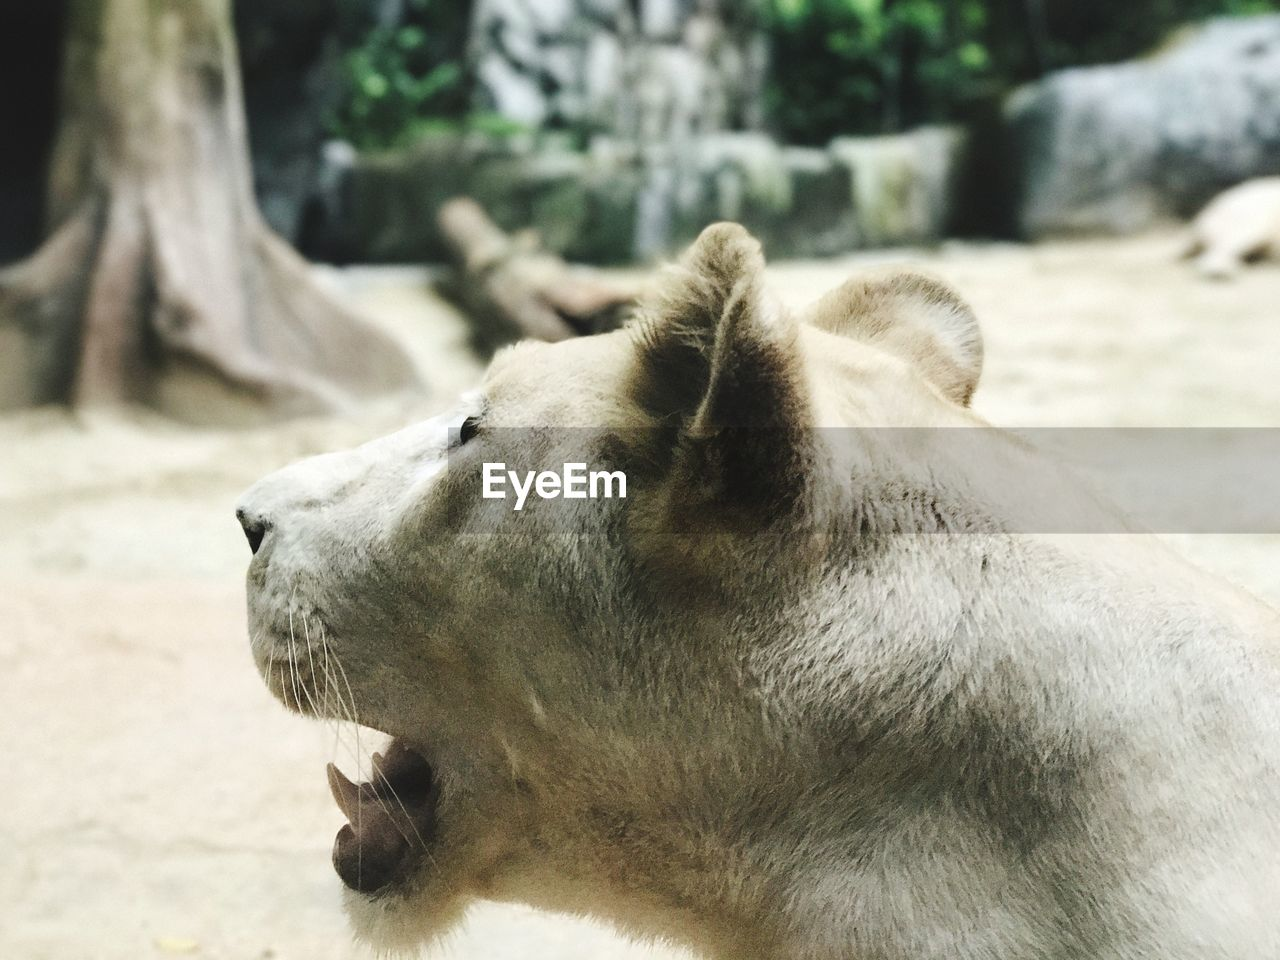 one animal, animal themes, mammal, animals in the wild, animal head, day, relaxation, no people, focus on foreground, outdoors, close-up, animal wildlife, nature, domestic animals